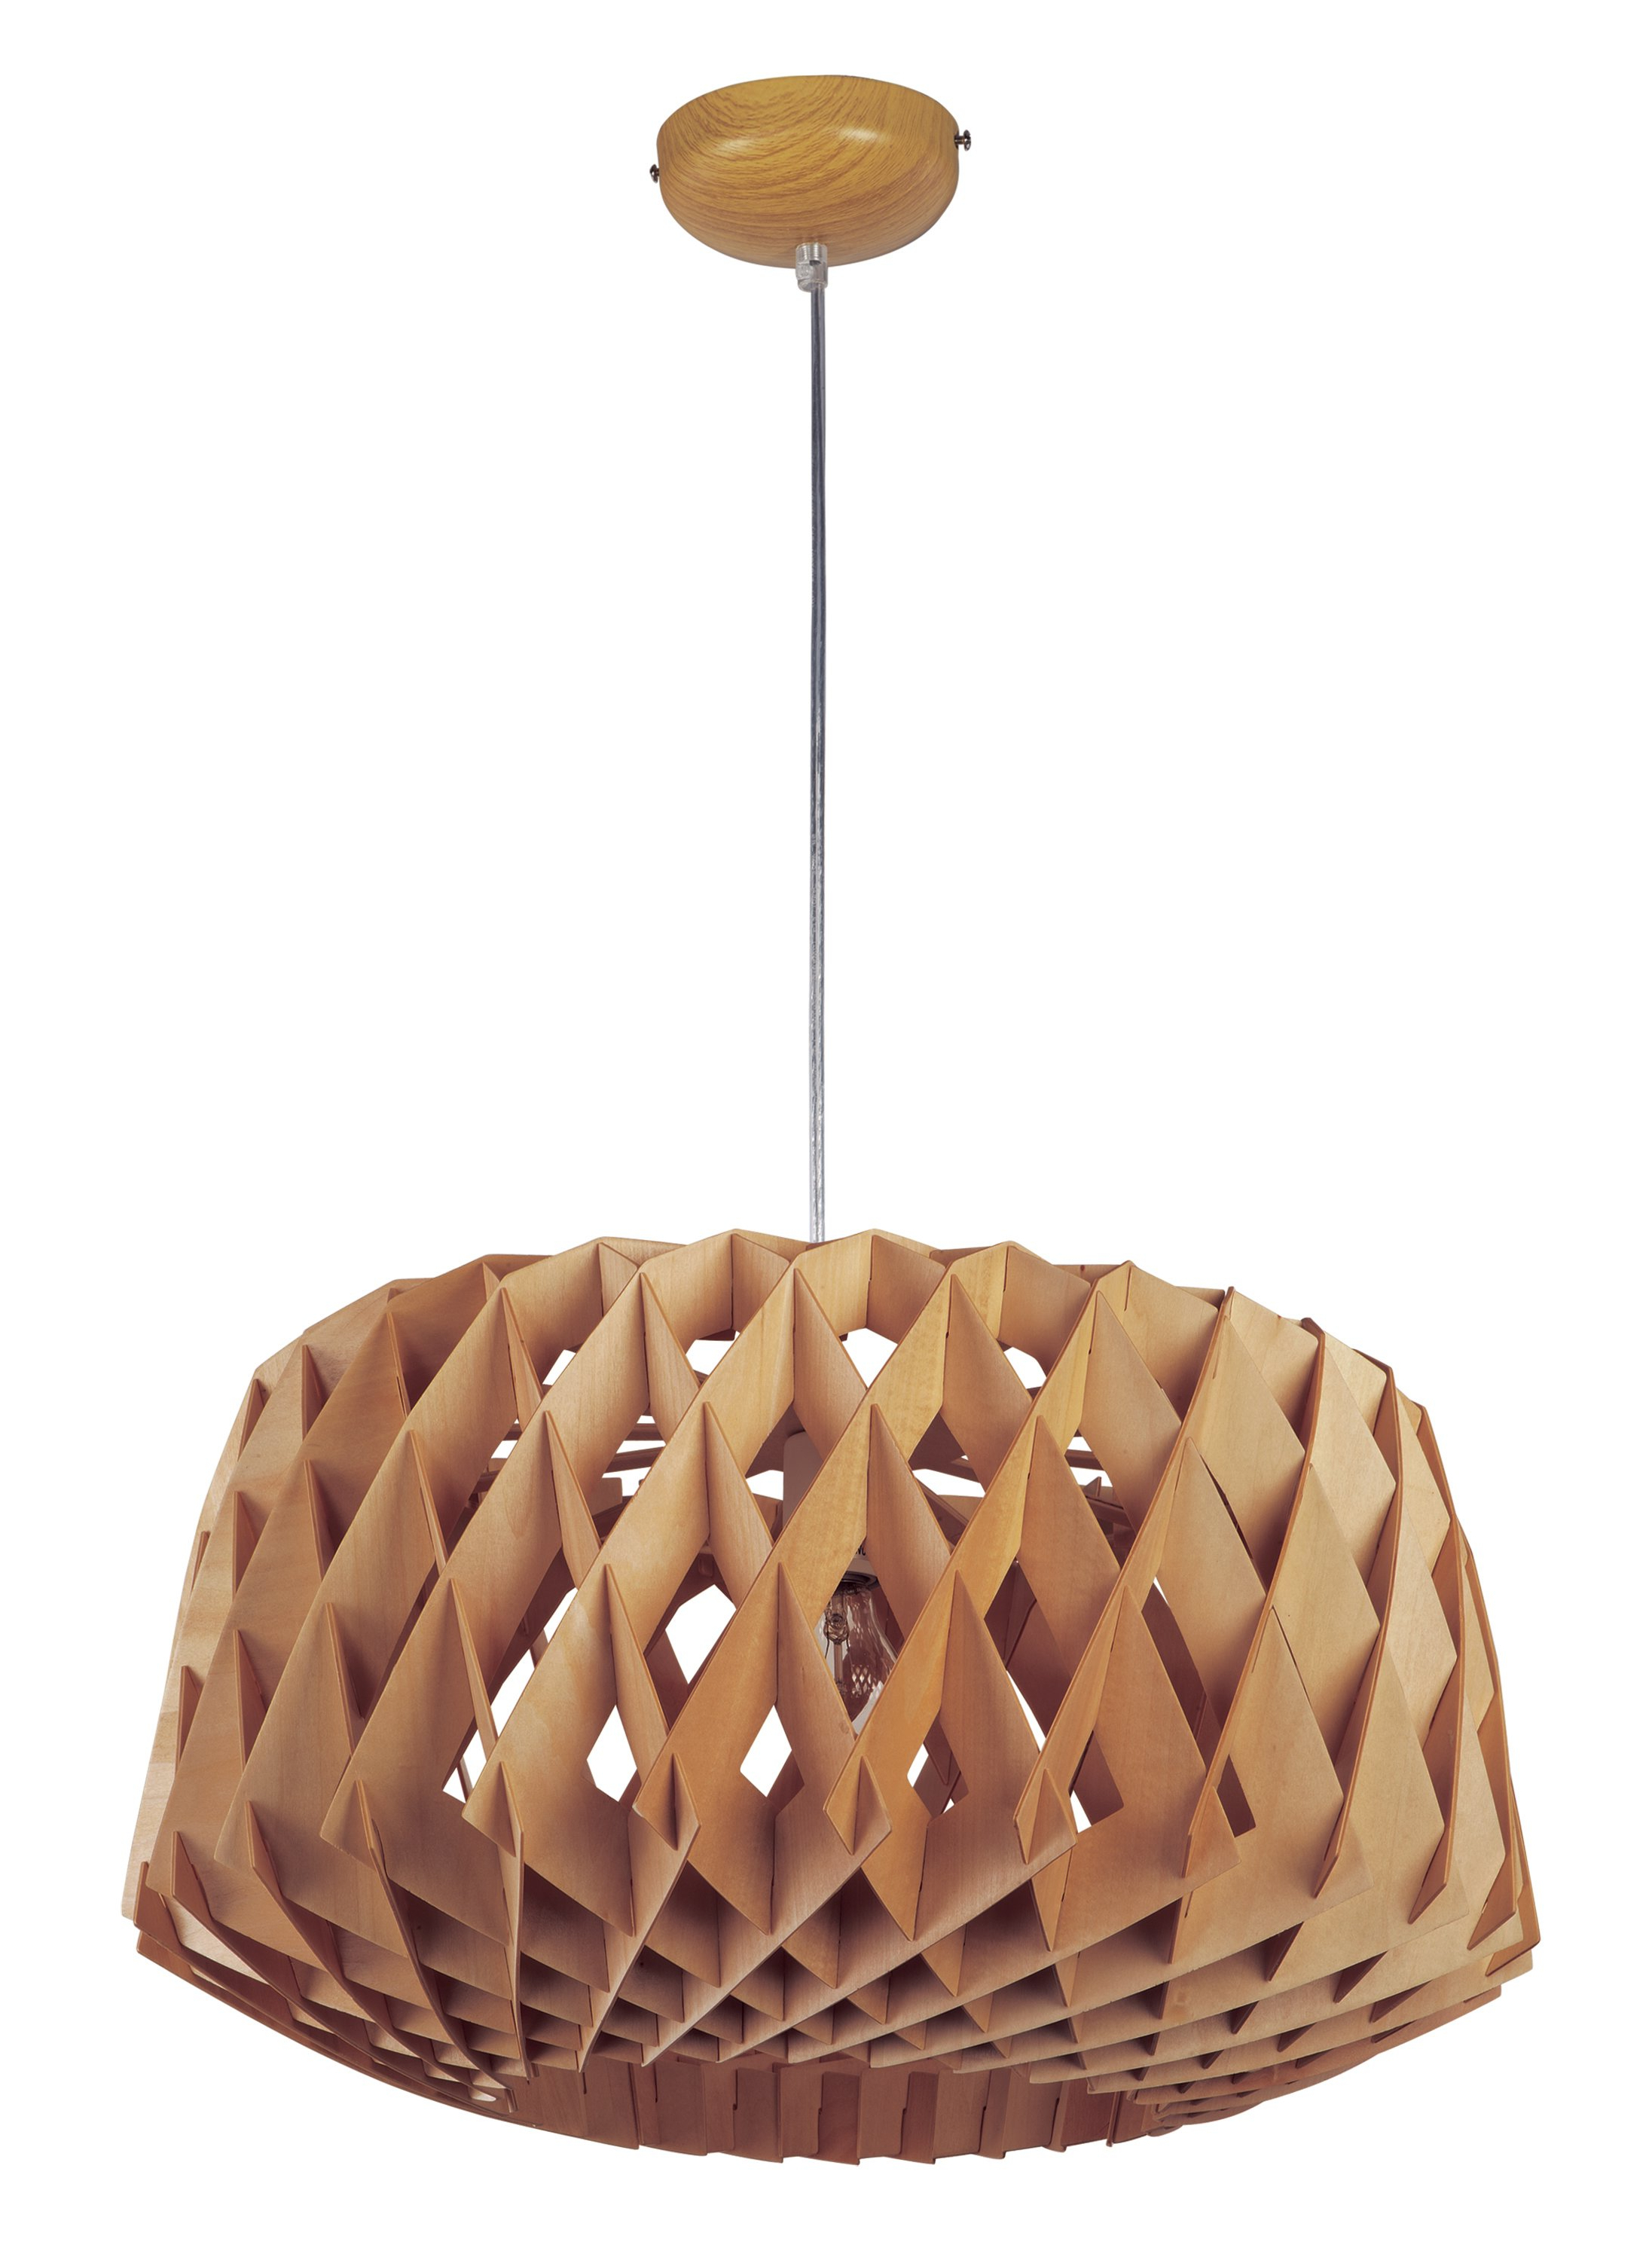 Most Up To Date Melora 1 Light Single Geometric Pendants Pertaining To Brayden Studio Melora 1 Light Single Geometric Pendant (Gallery 4 of 20)